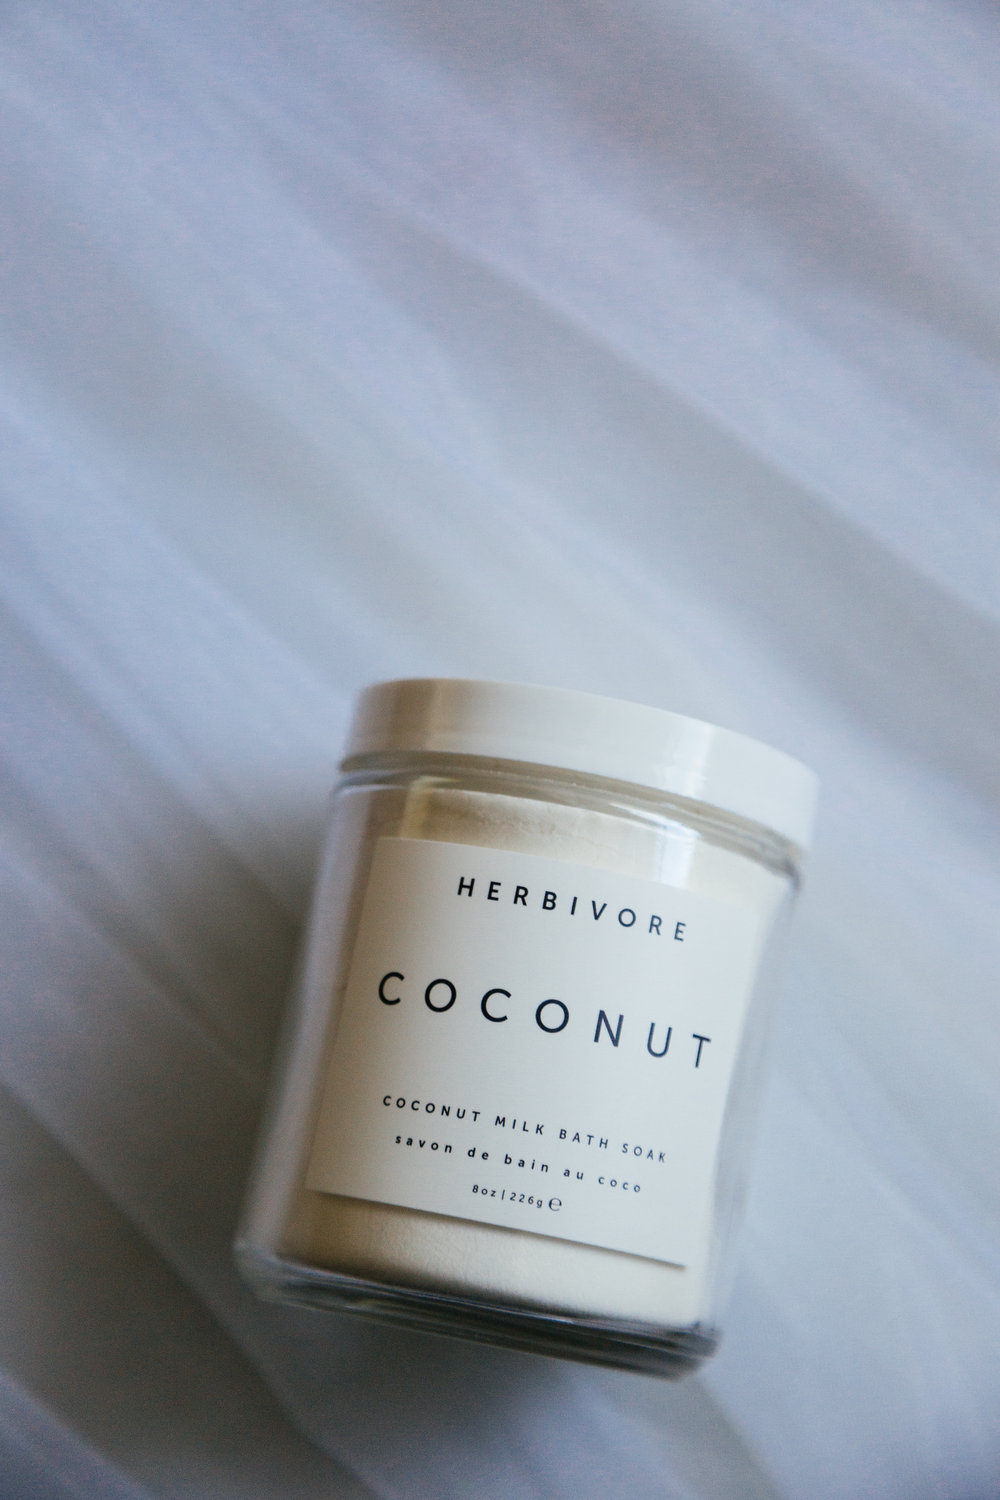 Can't wait to try  HERBIVORE'S  coconut milk bath this weekend!